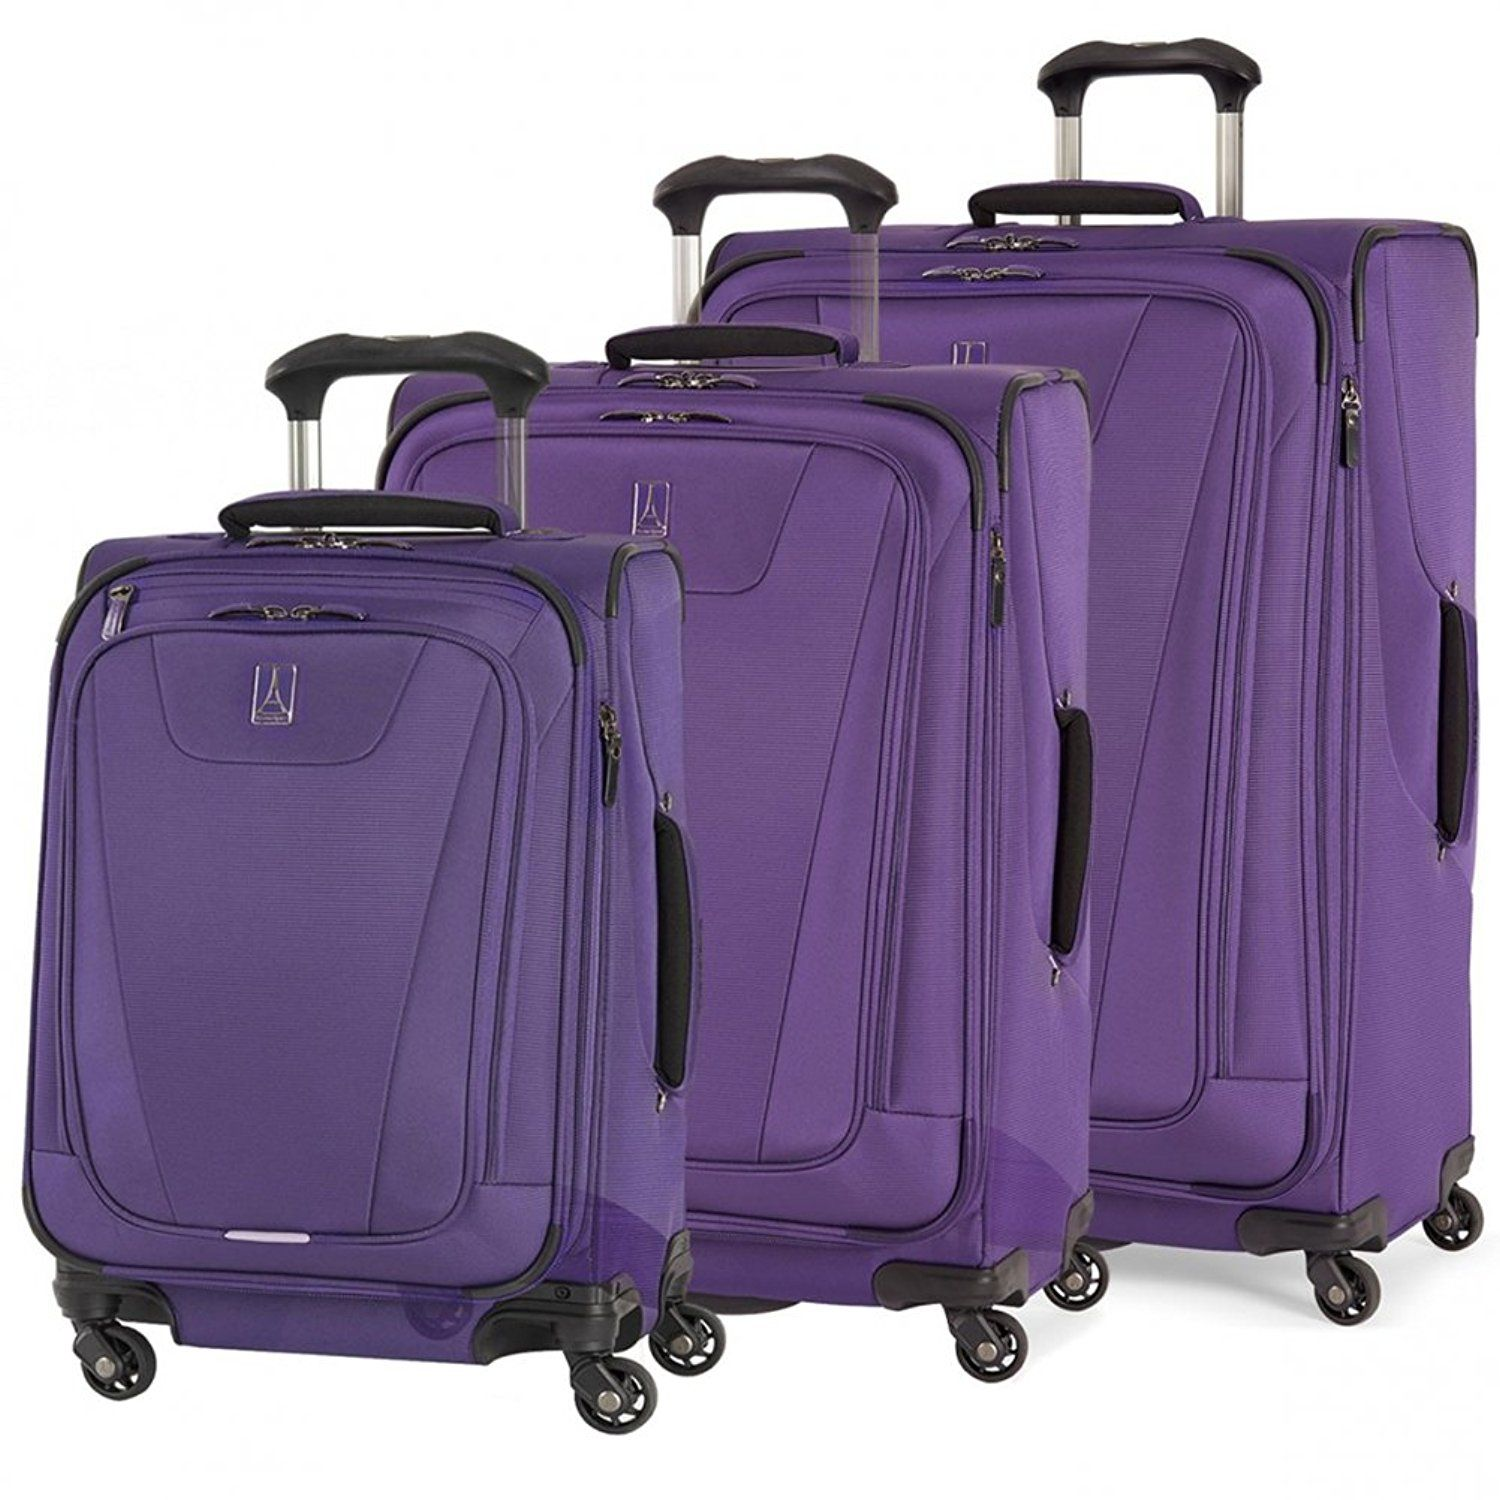 57146a467fda Travelpro Maxlite 4 3-Piece Expandable Spinner Set: 21 , 25 , and 29 ...